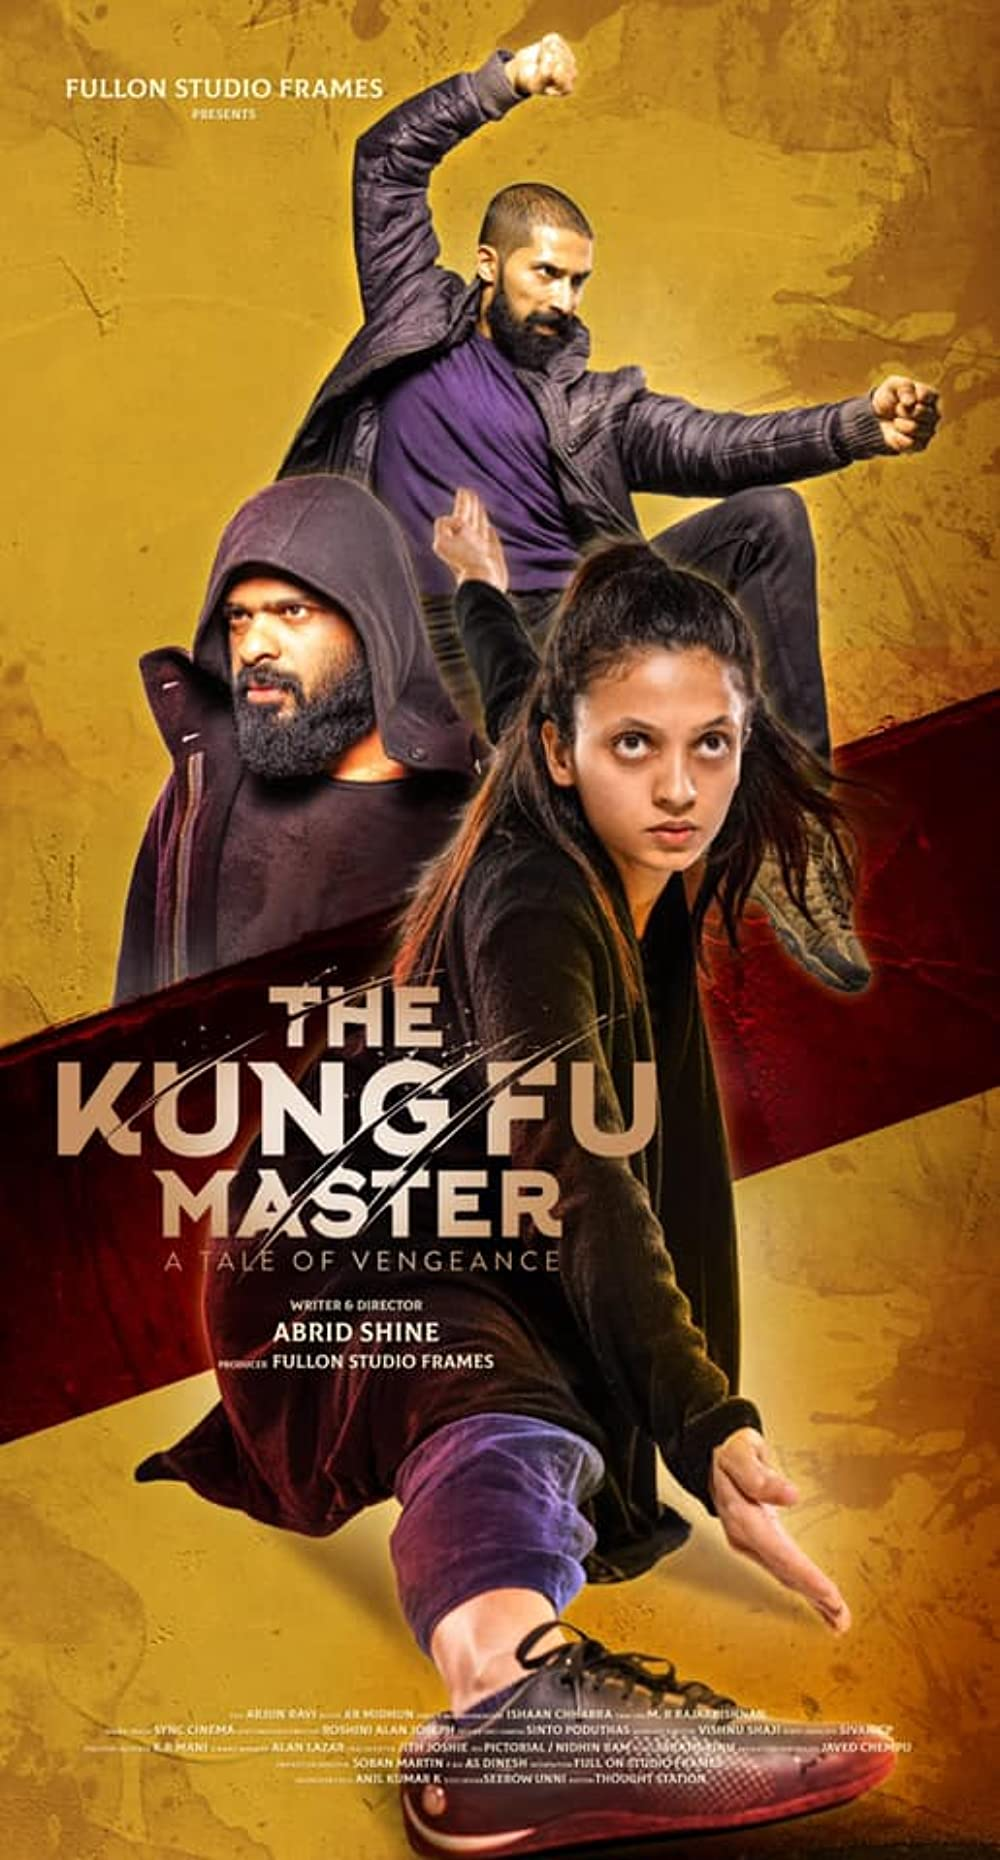 The Kung Fu Master 2020 Hindi Dubbed Dual Audio 480p HDTVRip 400MB x264 AAC